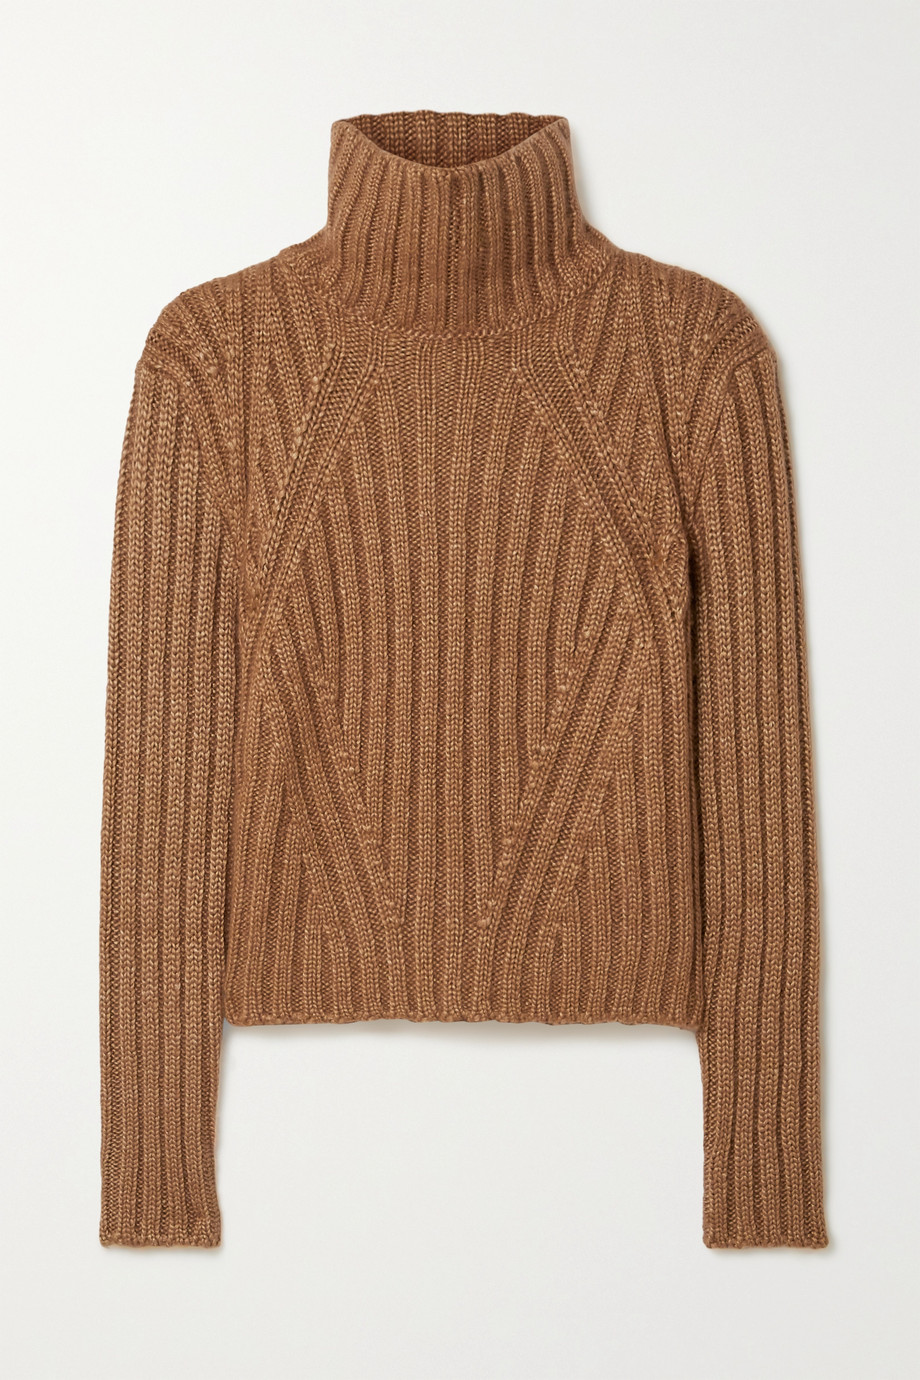 TOM FORD Ribbed silk, mohair and cashmere-blend turtleneck sweater